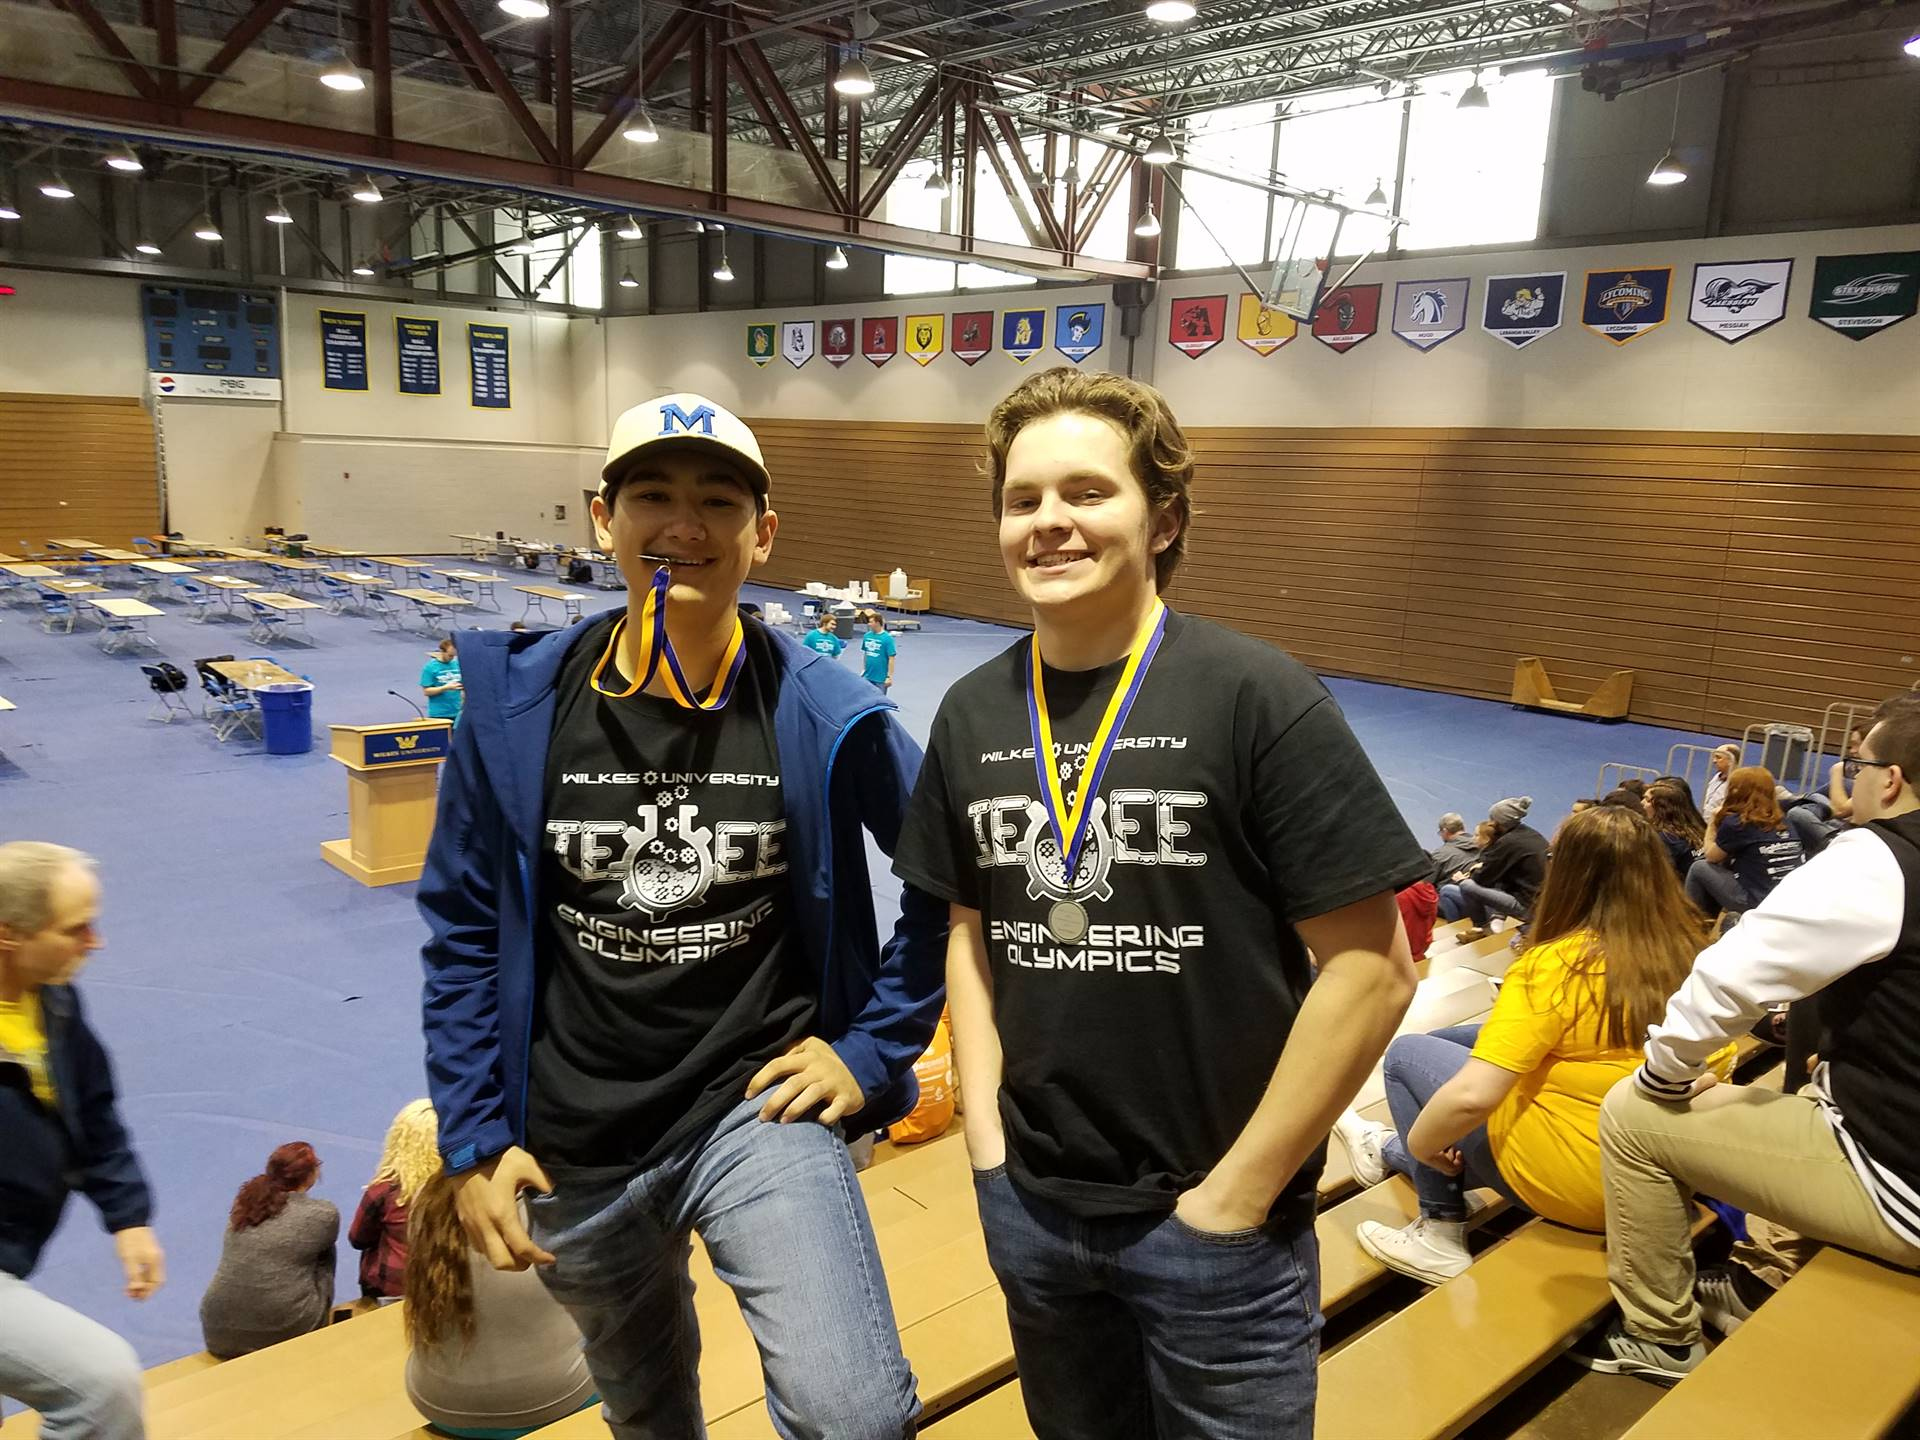 Engineering Olympics Medalists